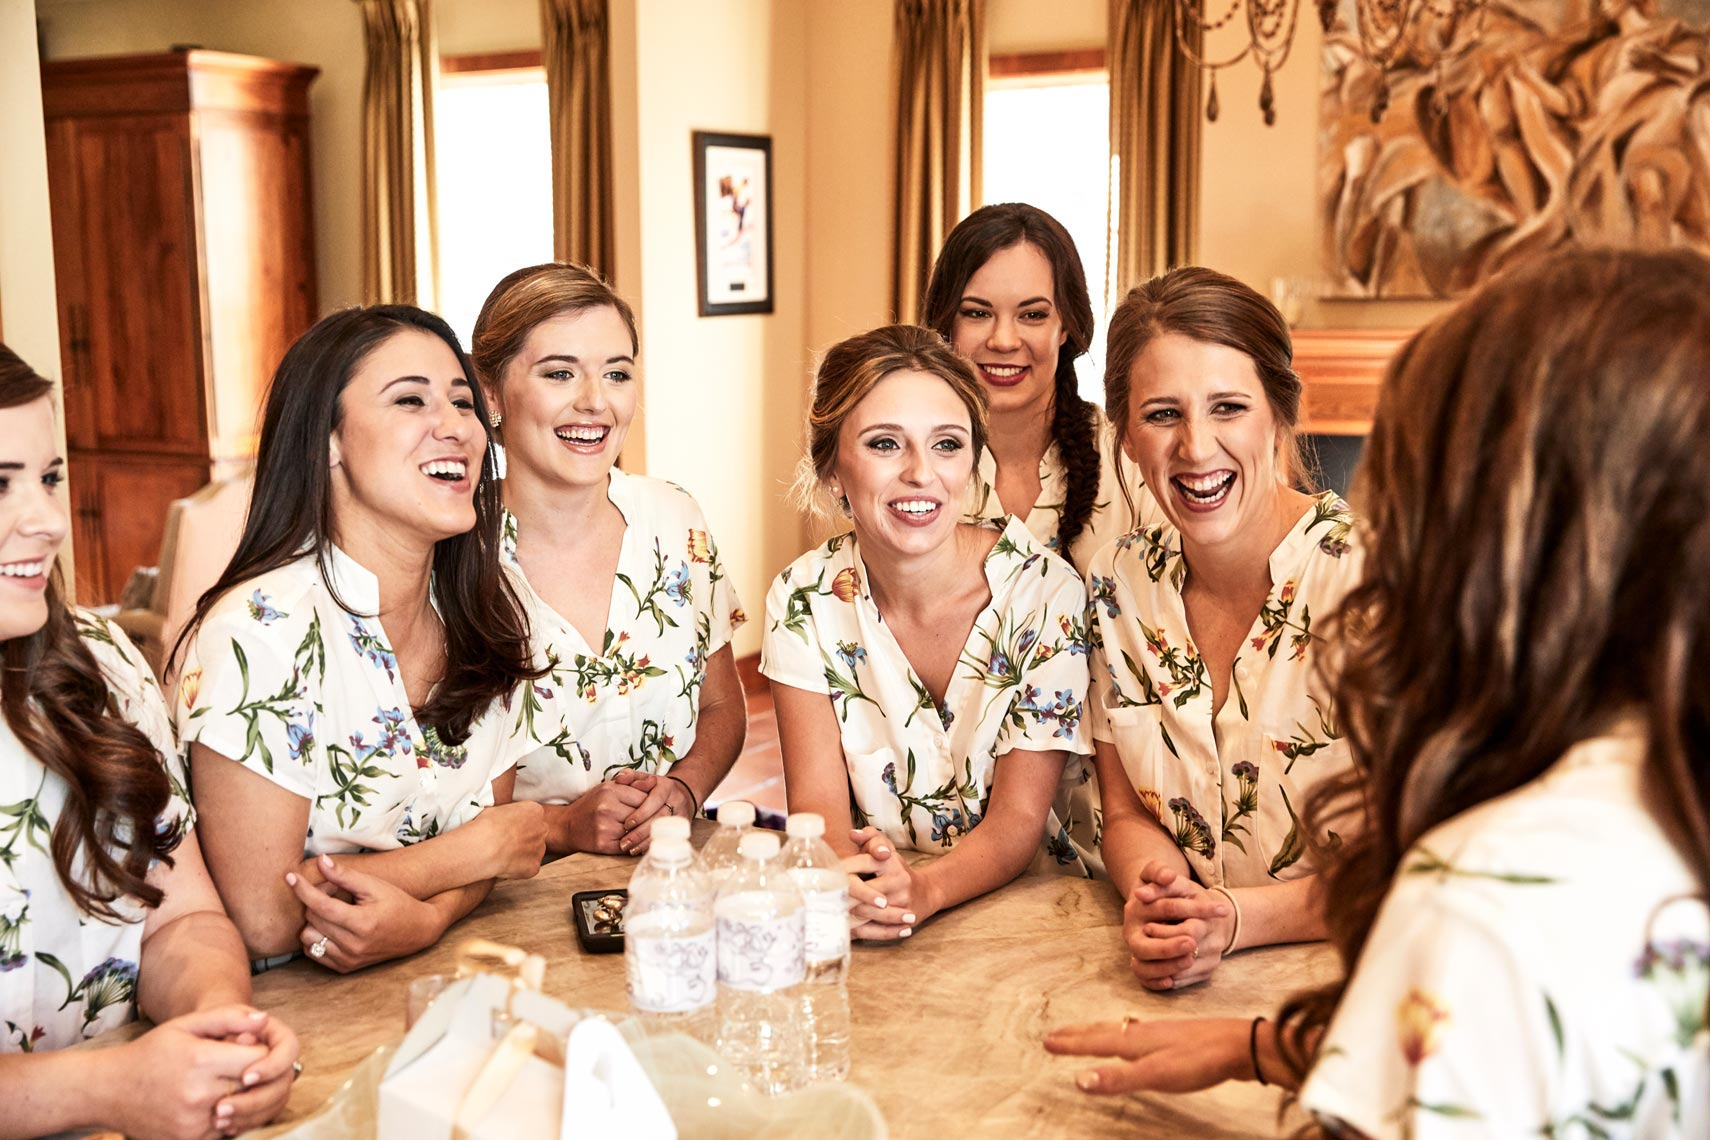 Mainecoastweddingphotography-1-9387